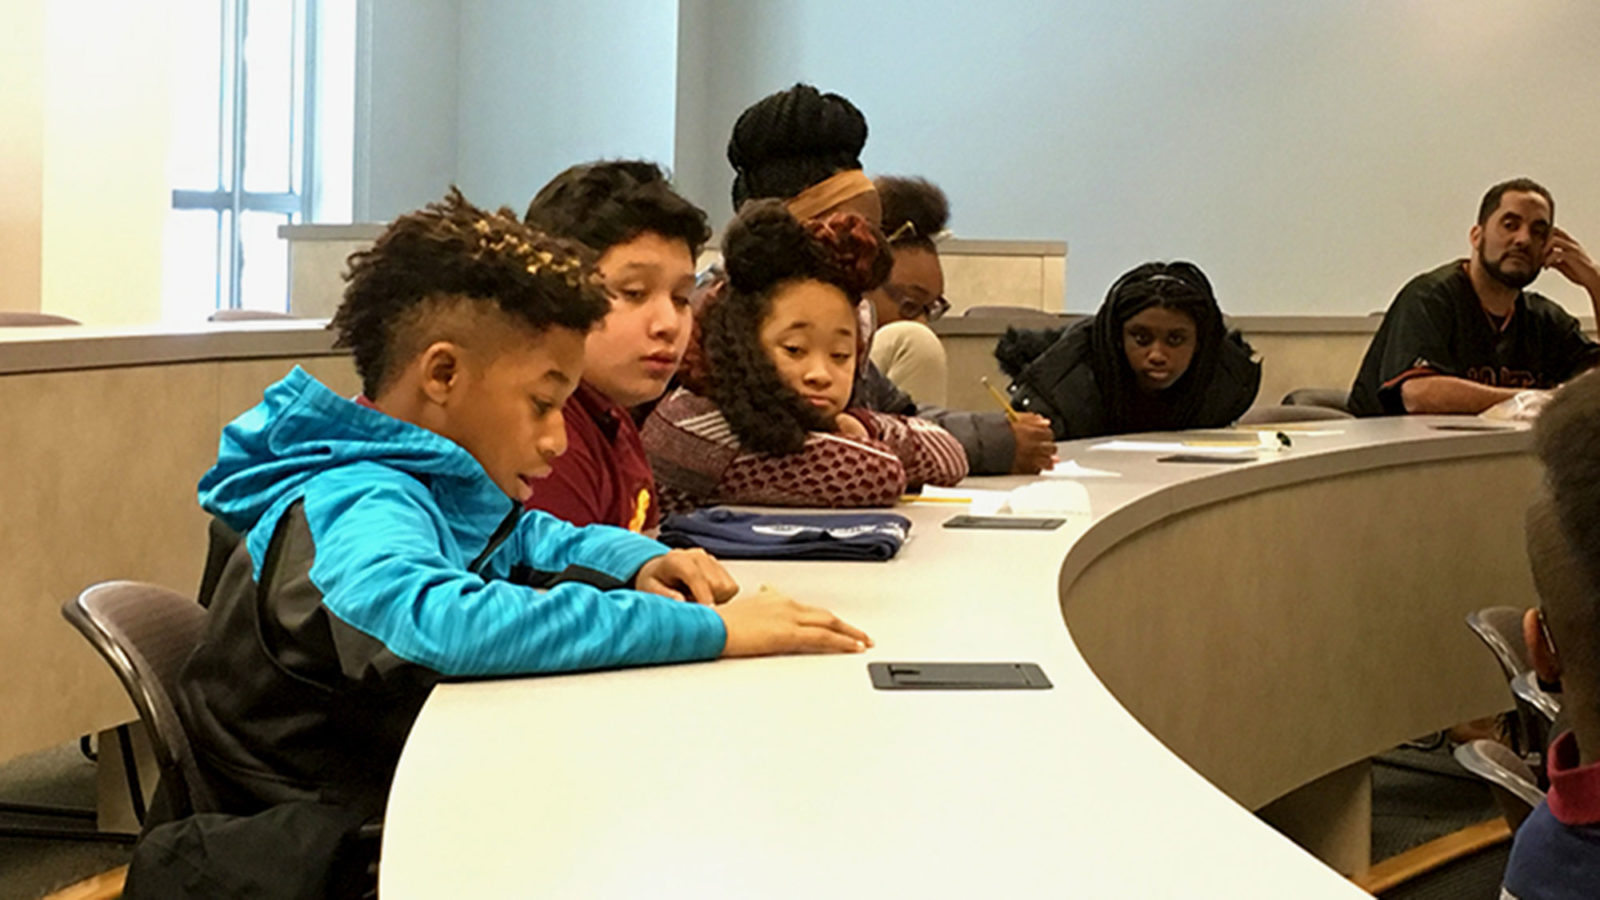 Students in Georgetown's Kids2College get an early start at the halfway point in their K-12 journey, an important year to begin preparing students for higher education.